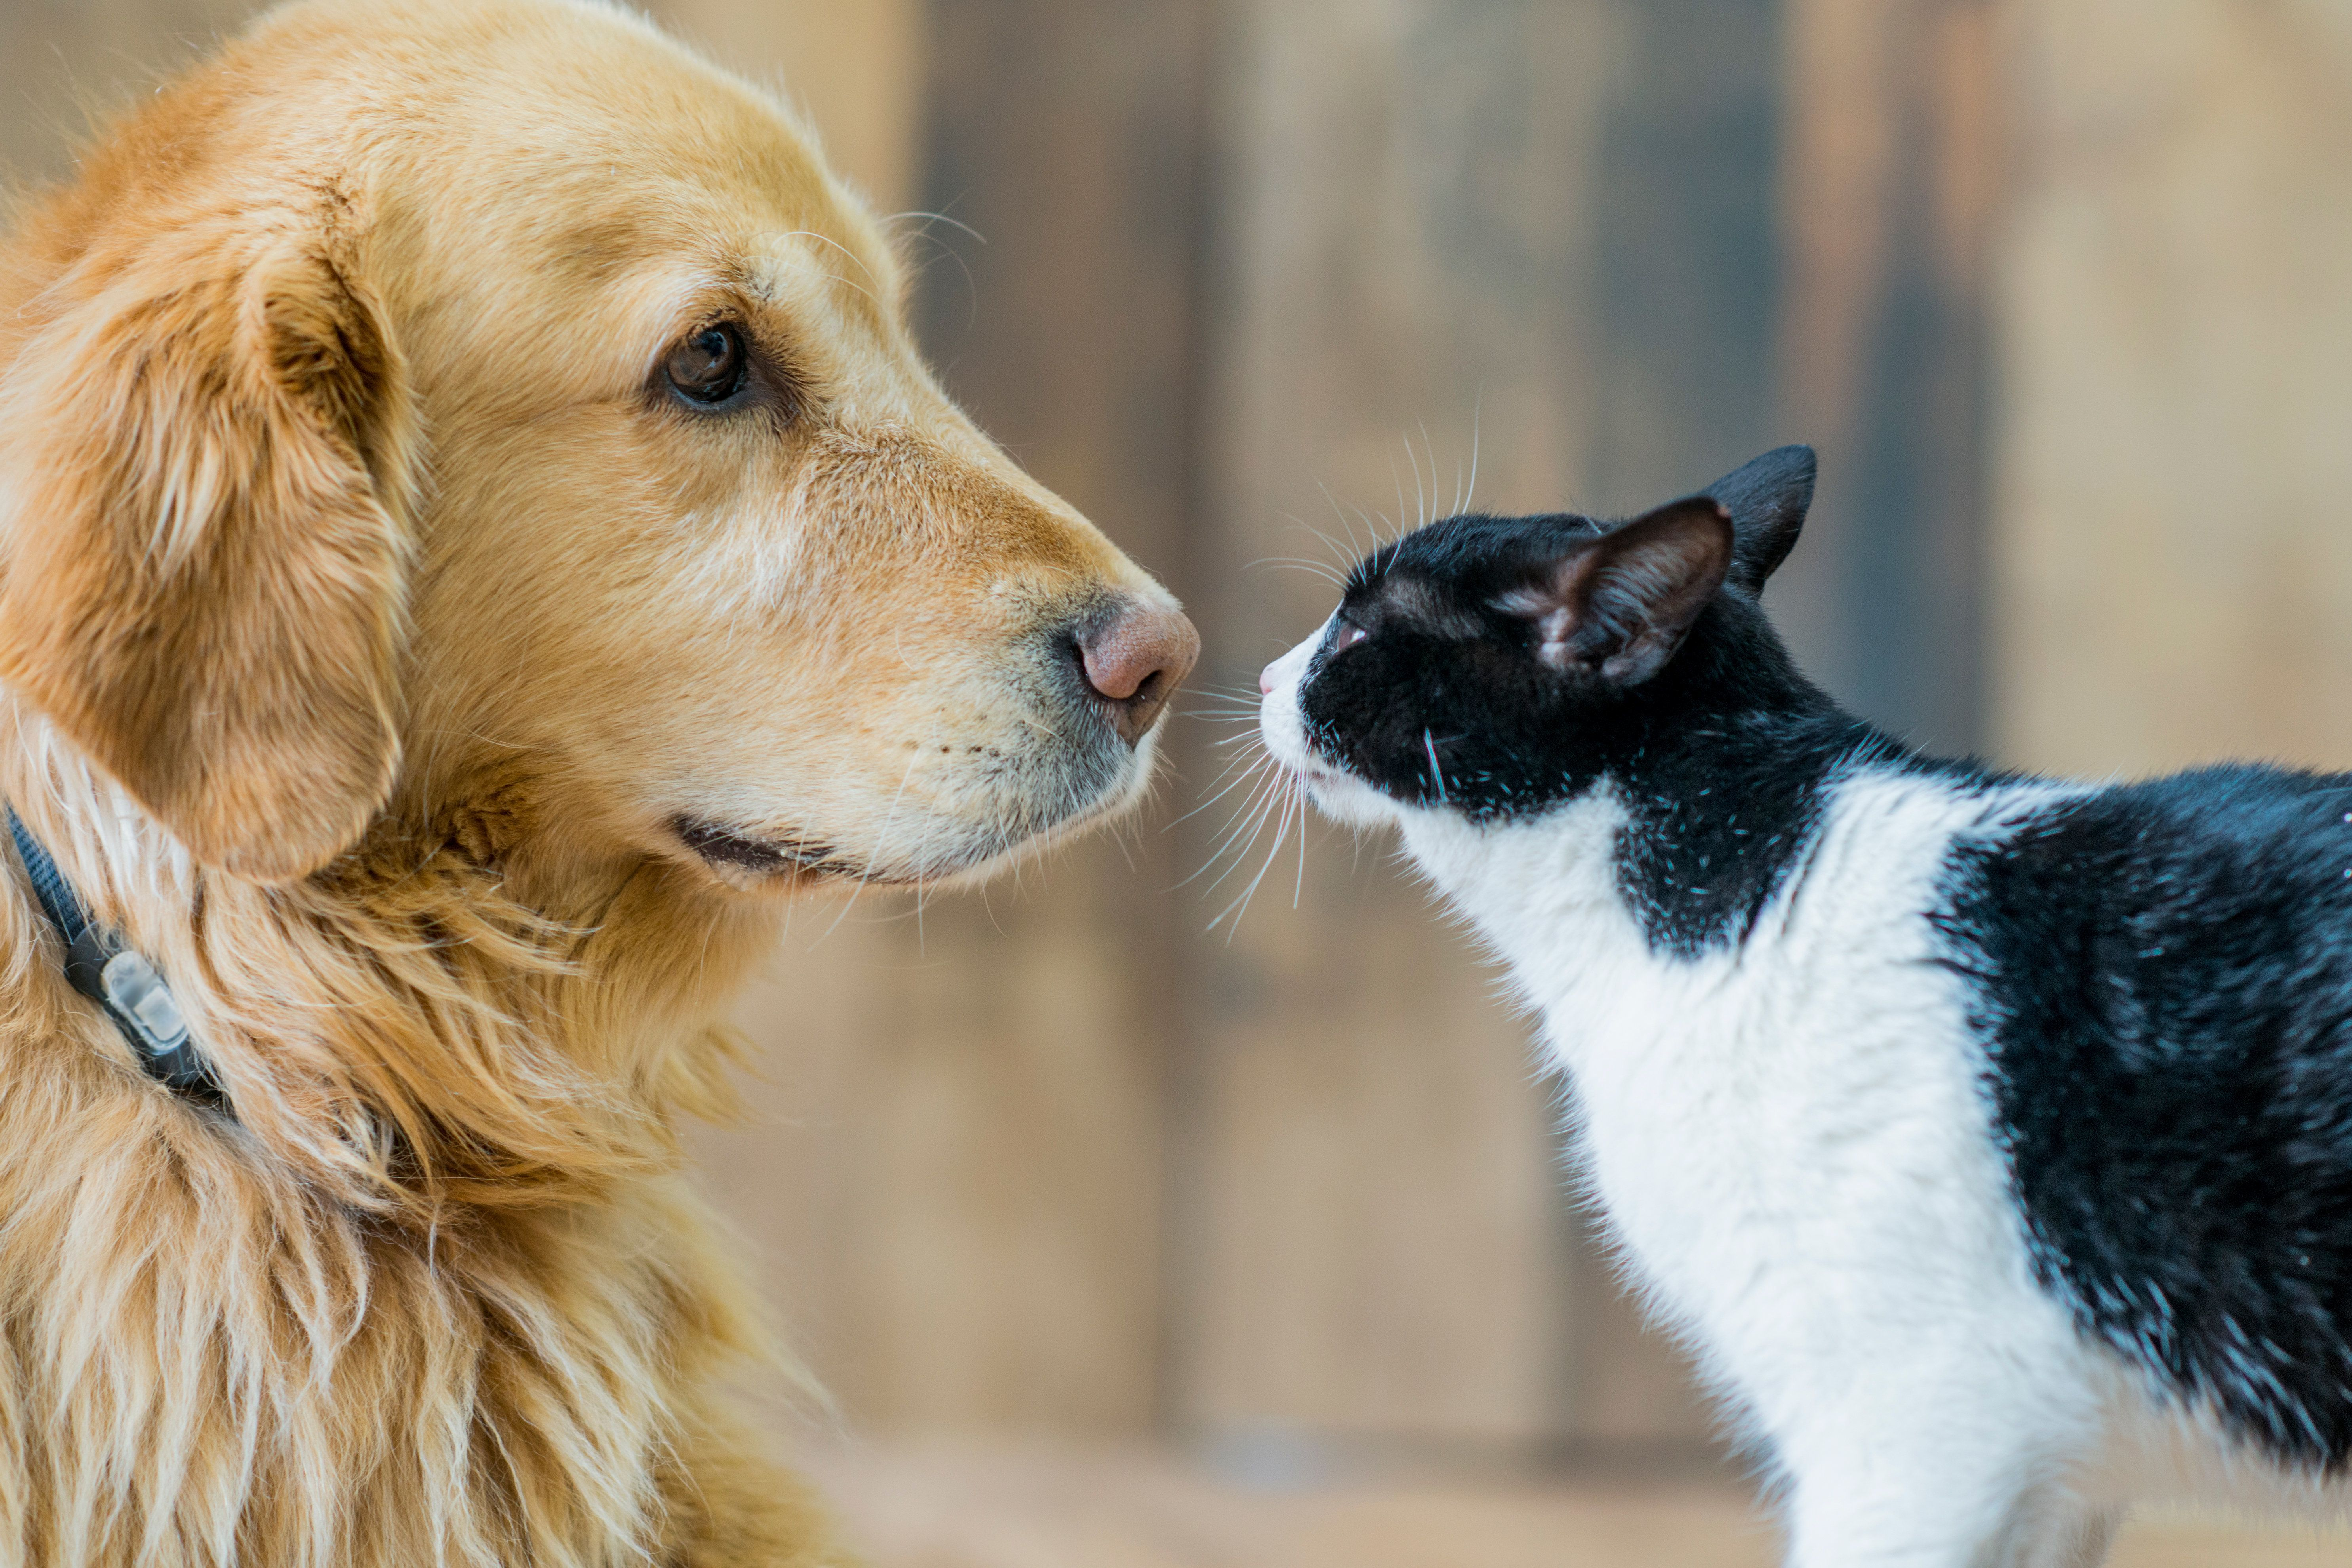 Did A Viral Study 'Prove' Dogs Are Smarter Than Cats? Not Quite.